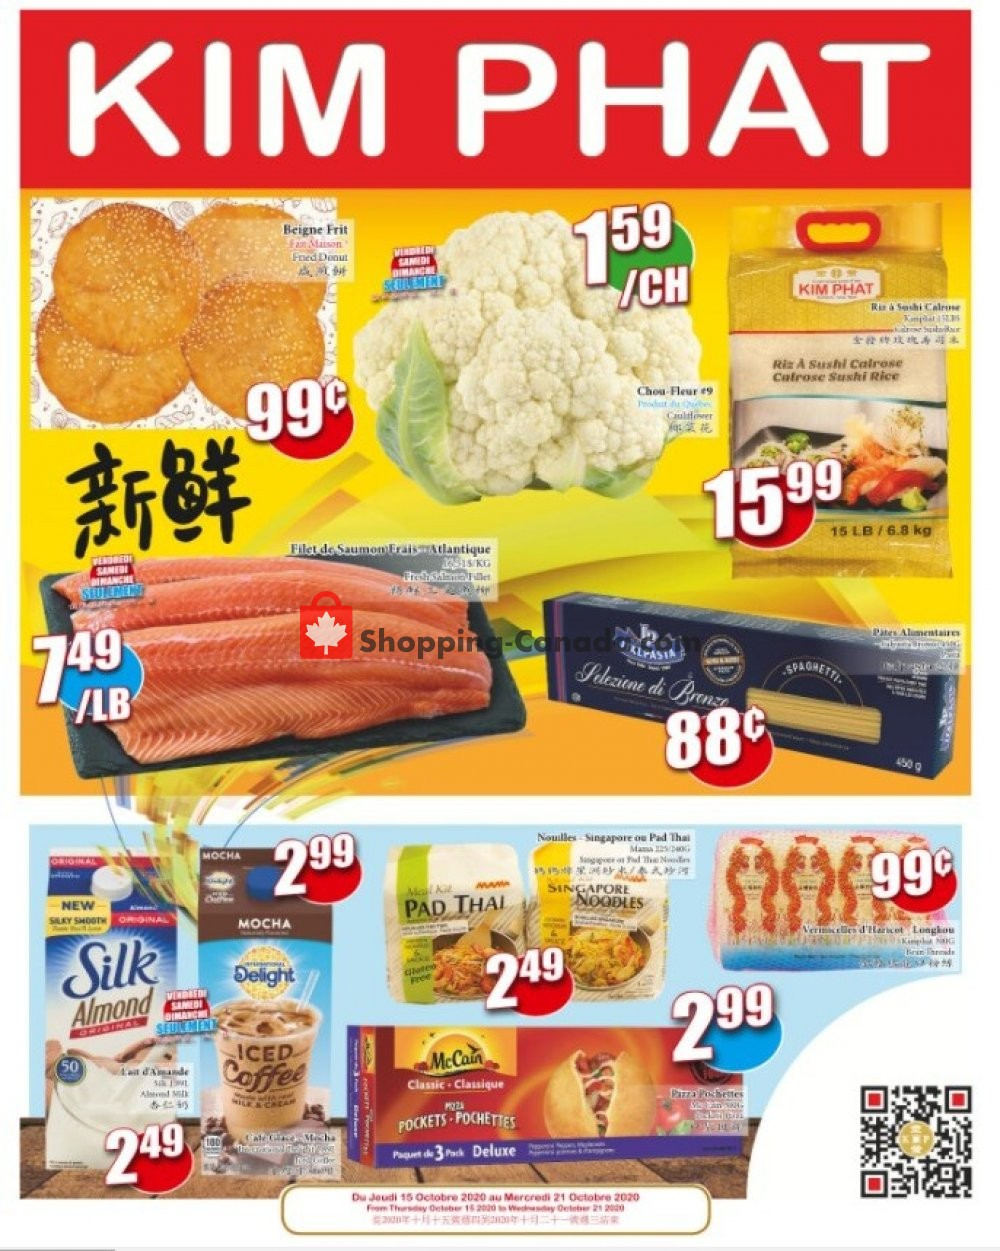 Flyer Kim Phat Canada - from Thursday October 15, 2020 to Wednesday October 21, 2020